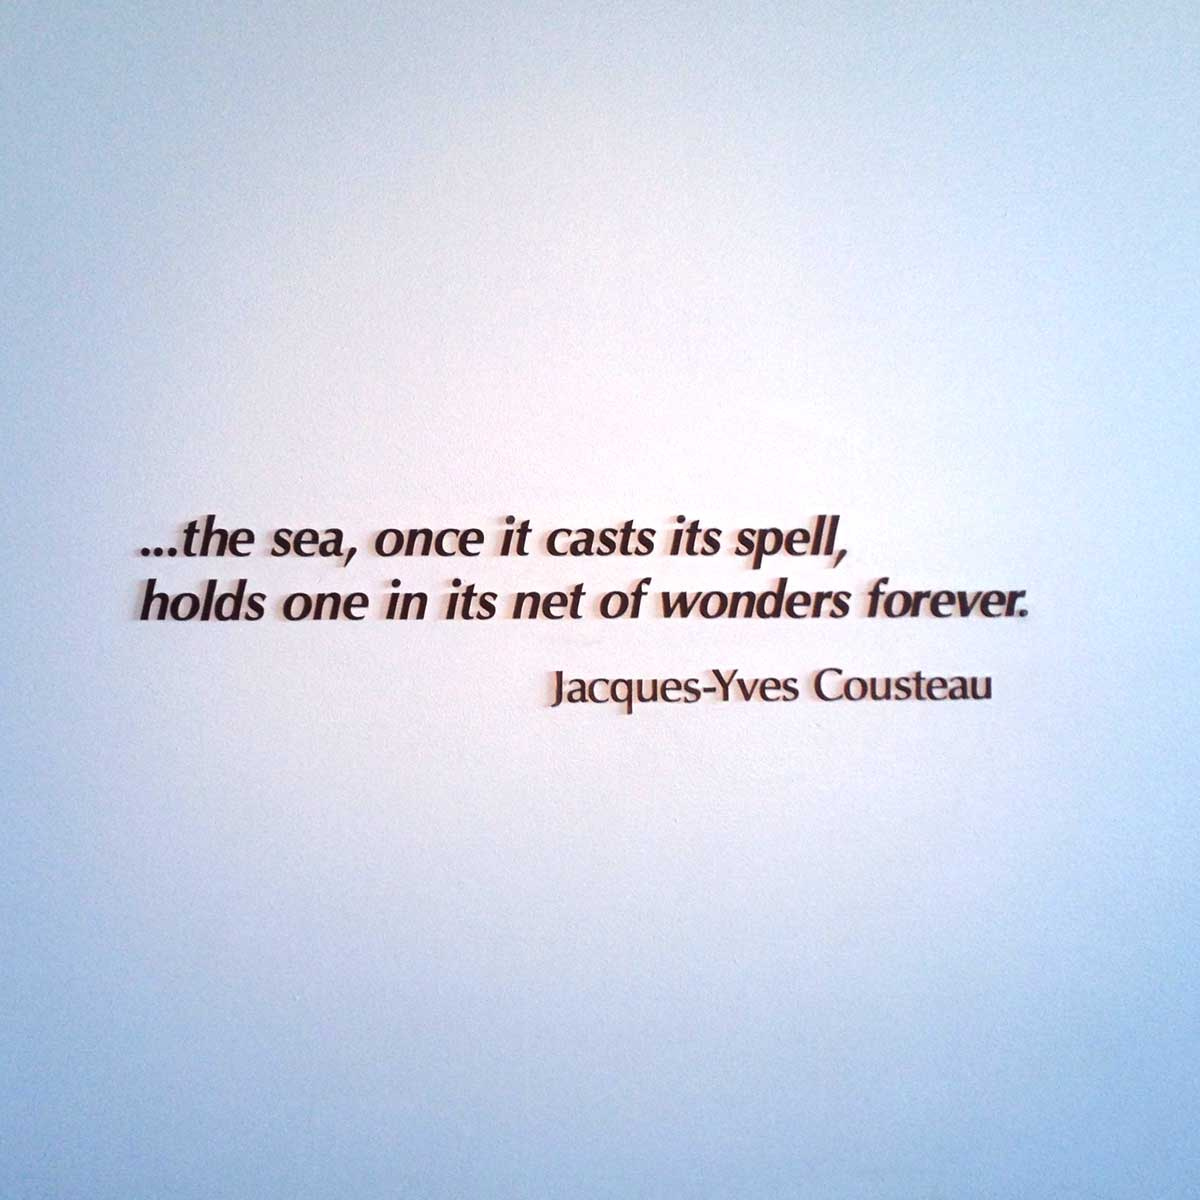 This is one of the beautiful quotes on the wall at the Monterey Bay Aquarium.